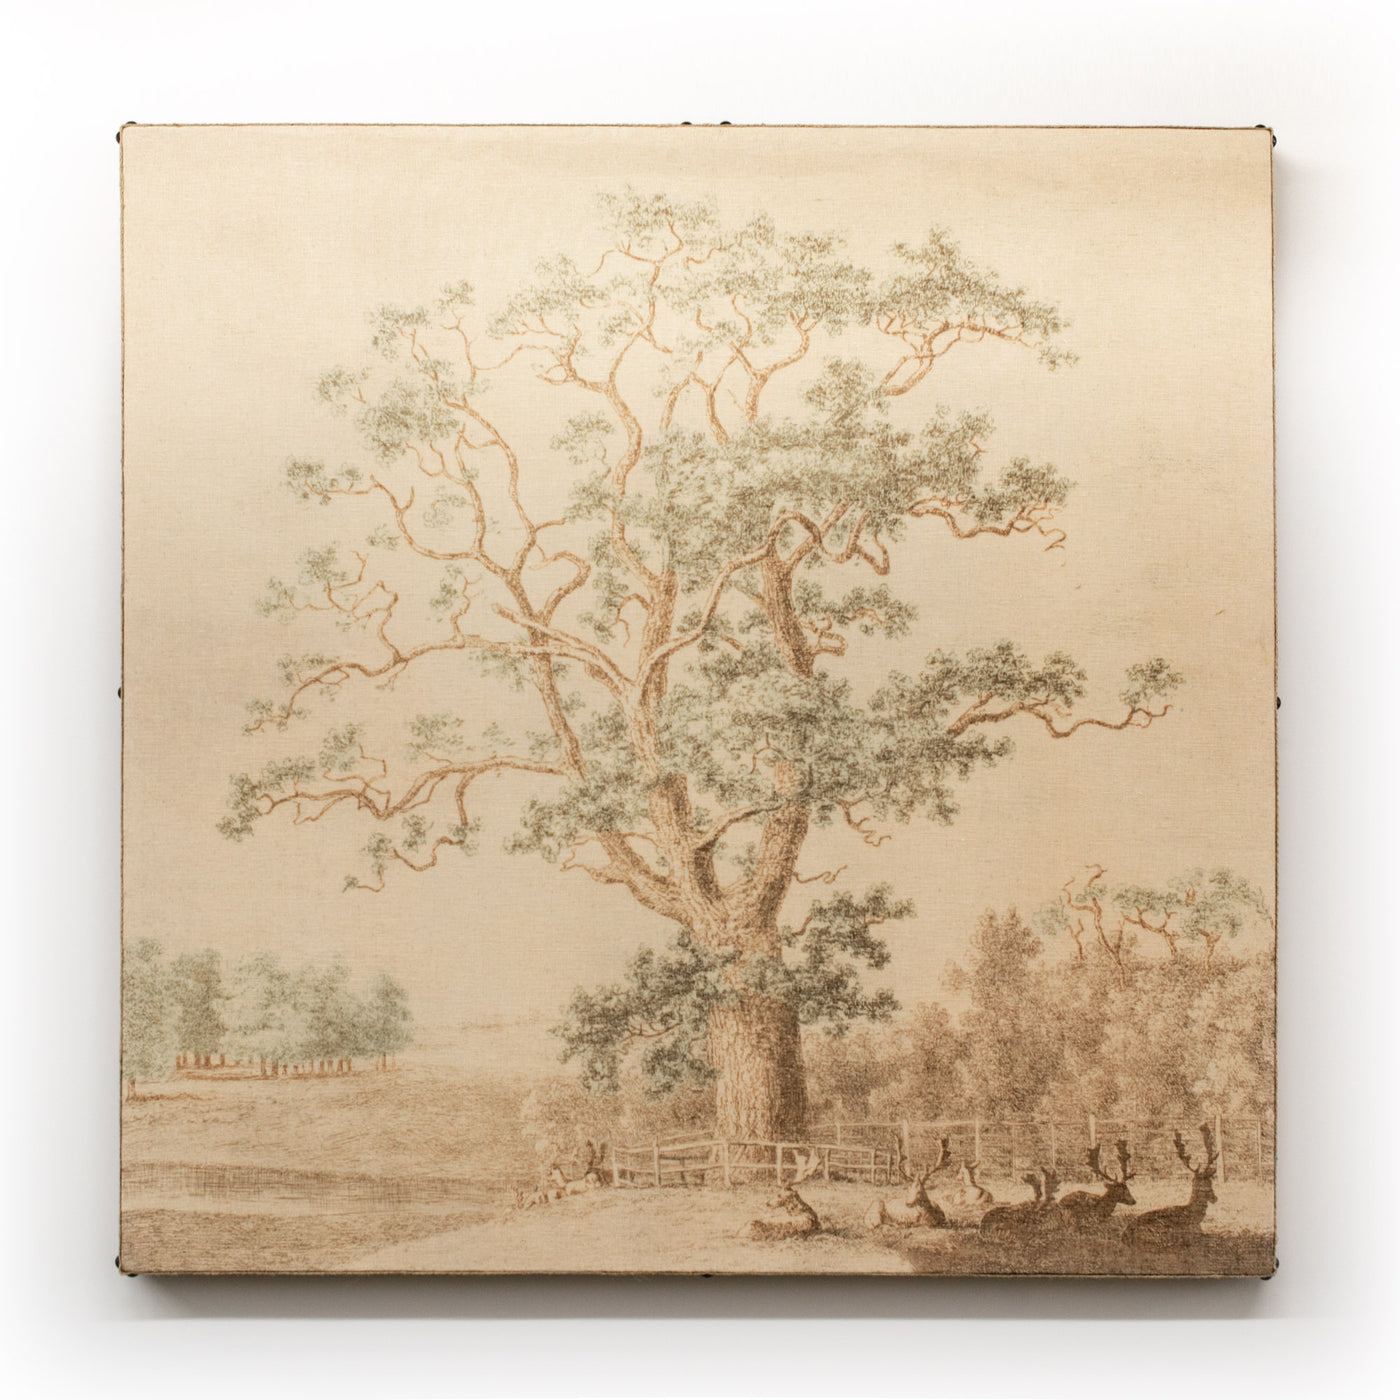 Wall Art Multi Layered Oak Tree with Deer Square